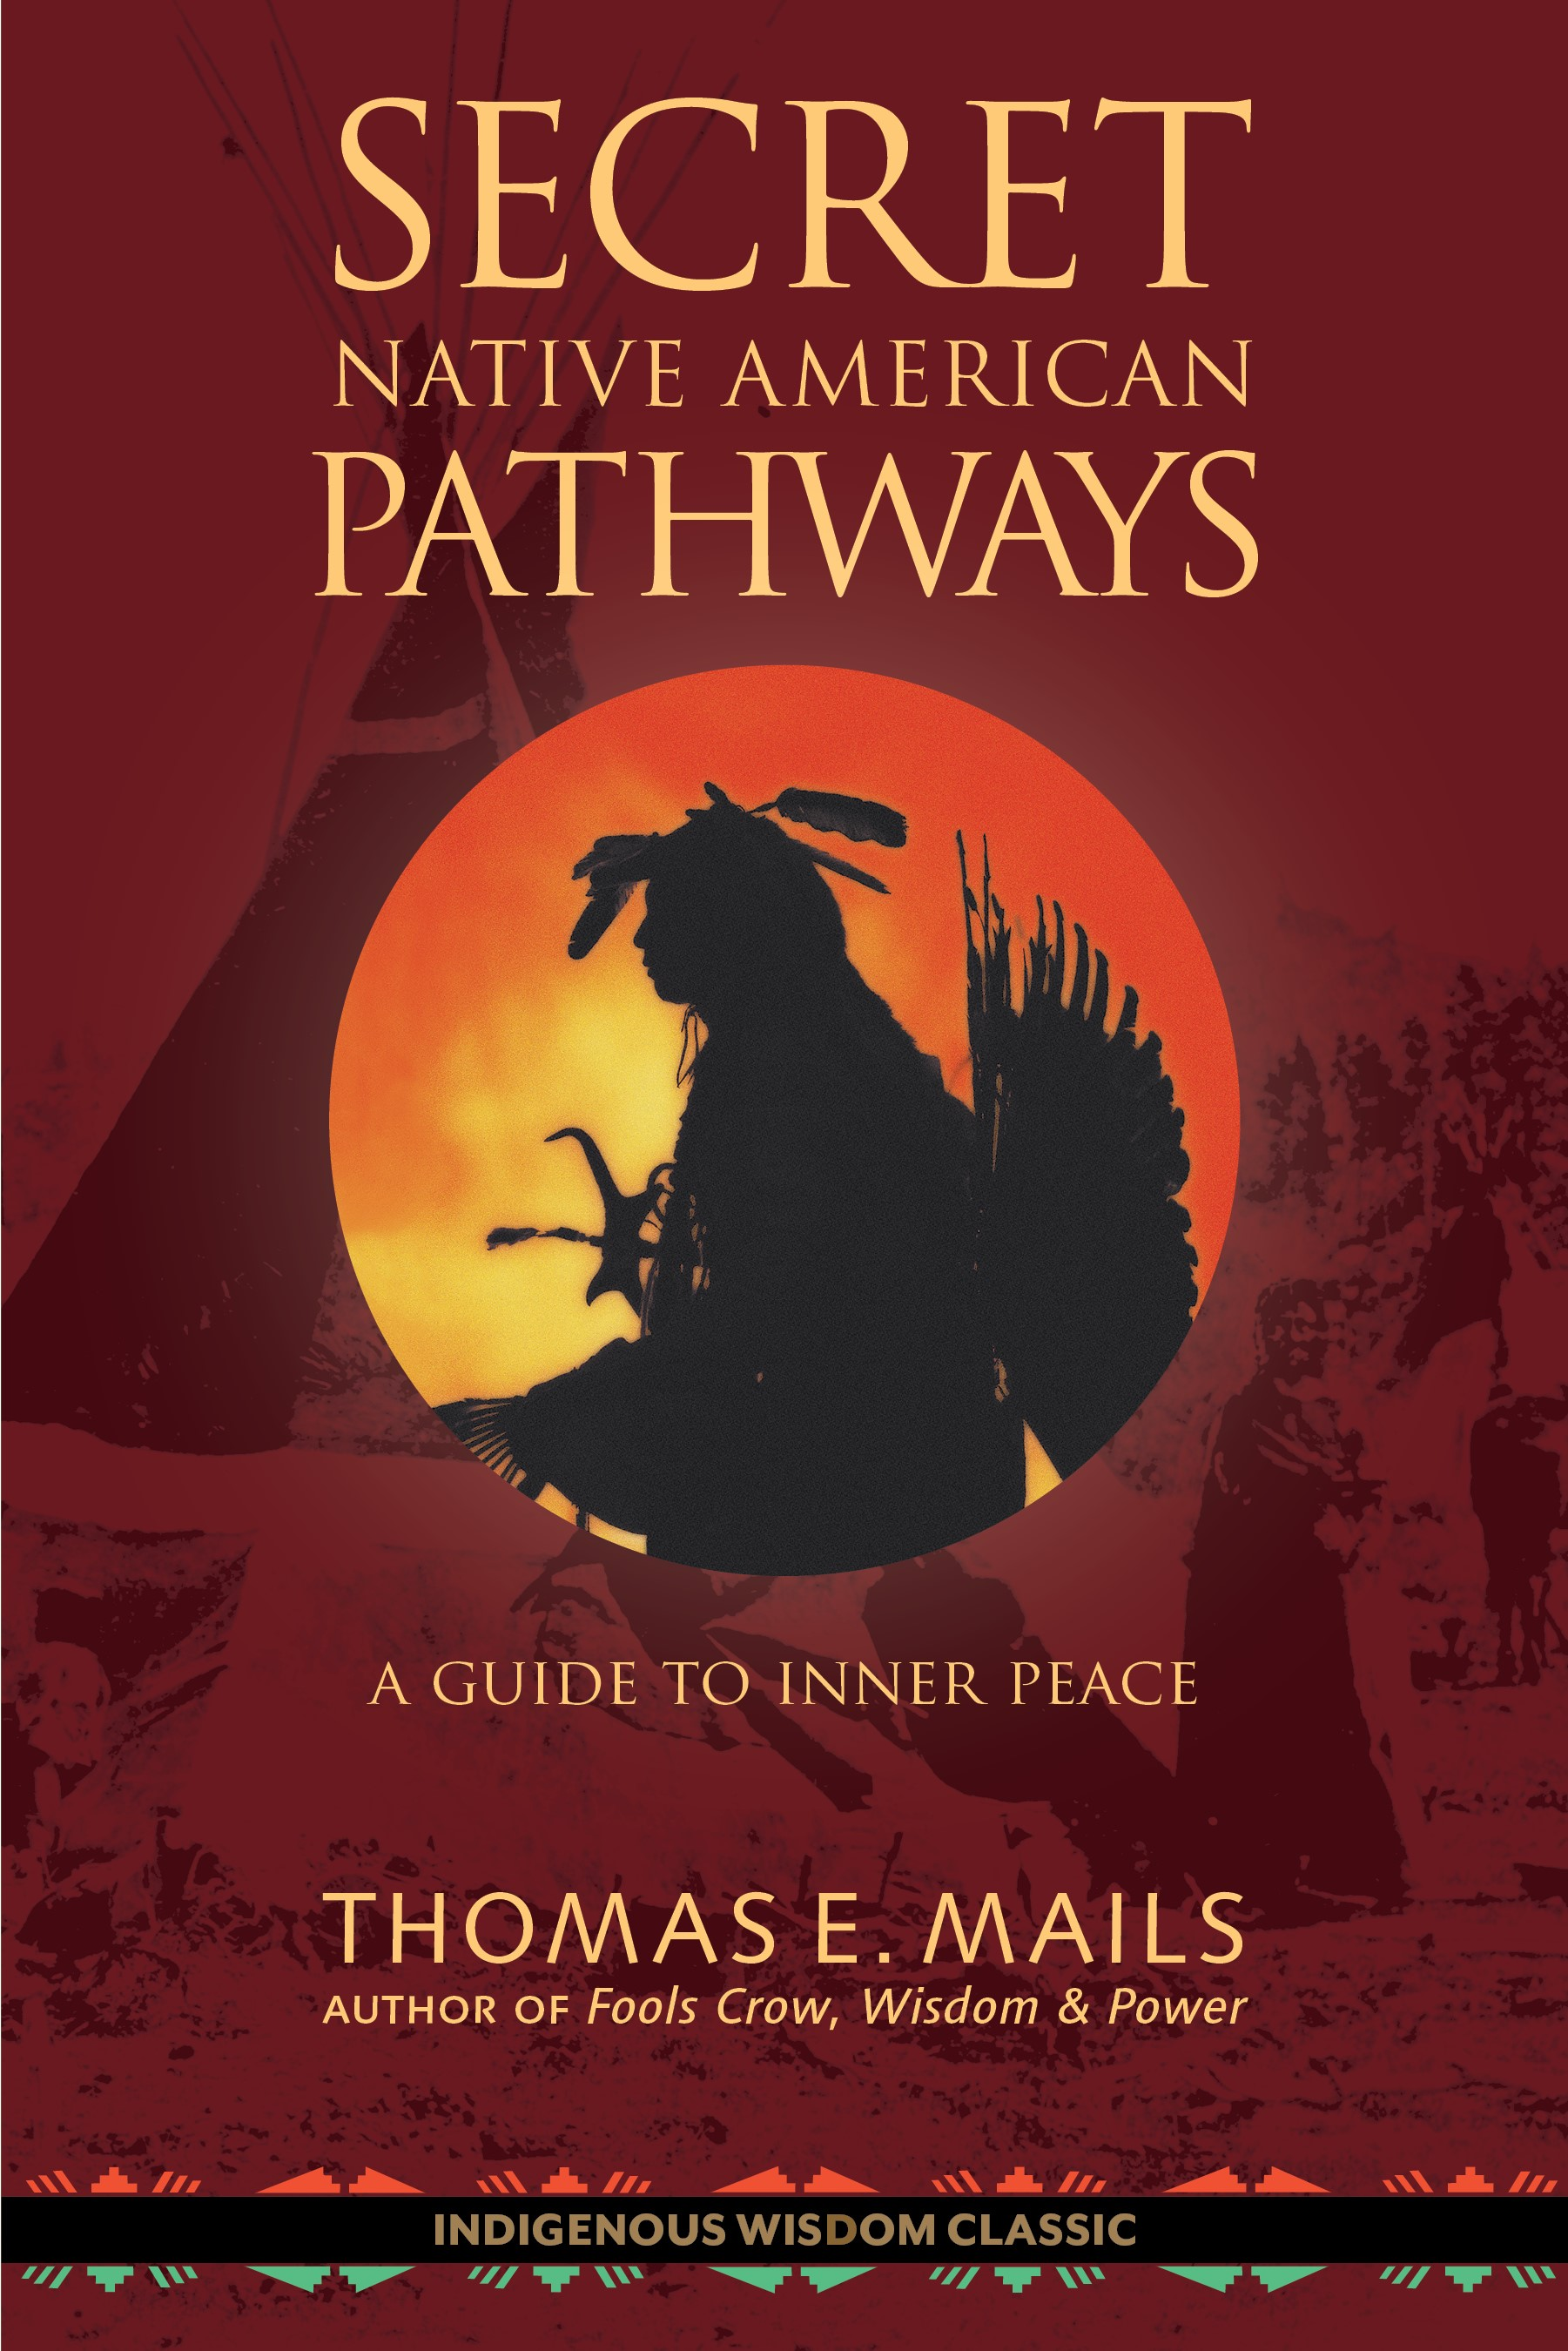 Thomas E Mails Secret Native American Pathways A Guide To Inner